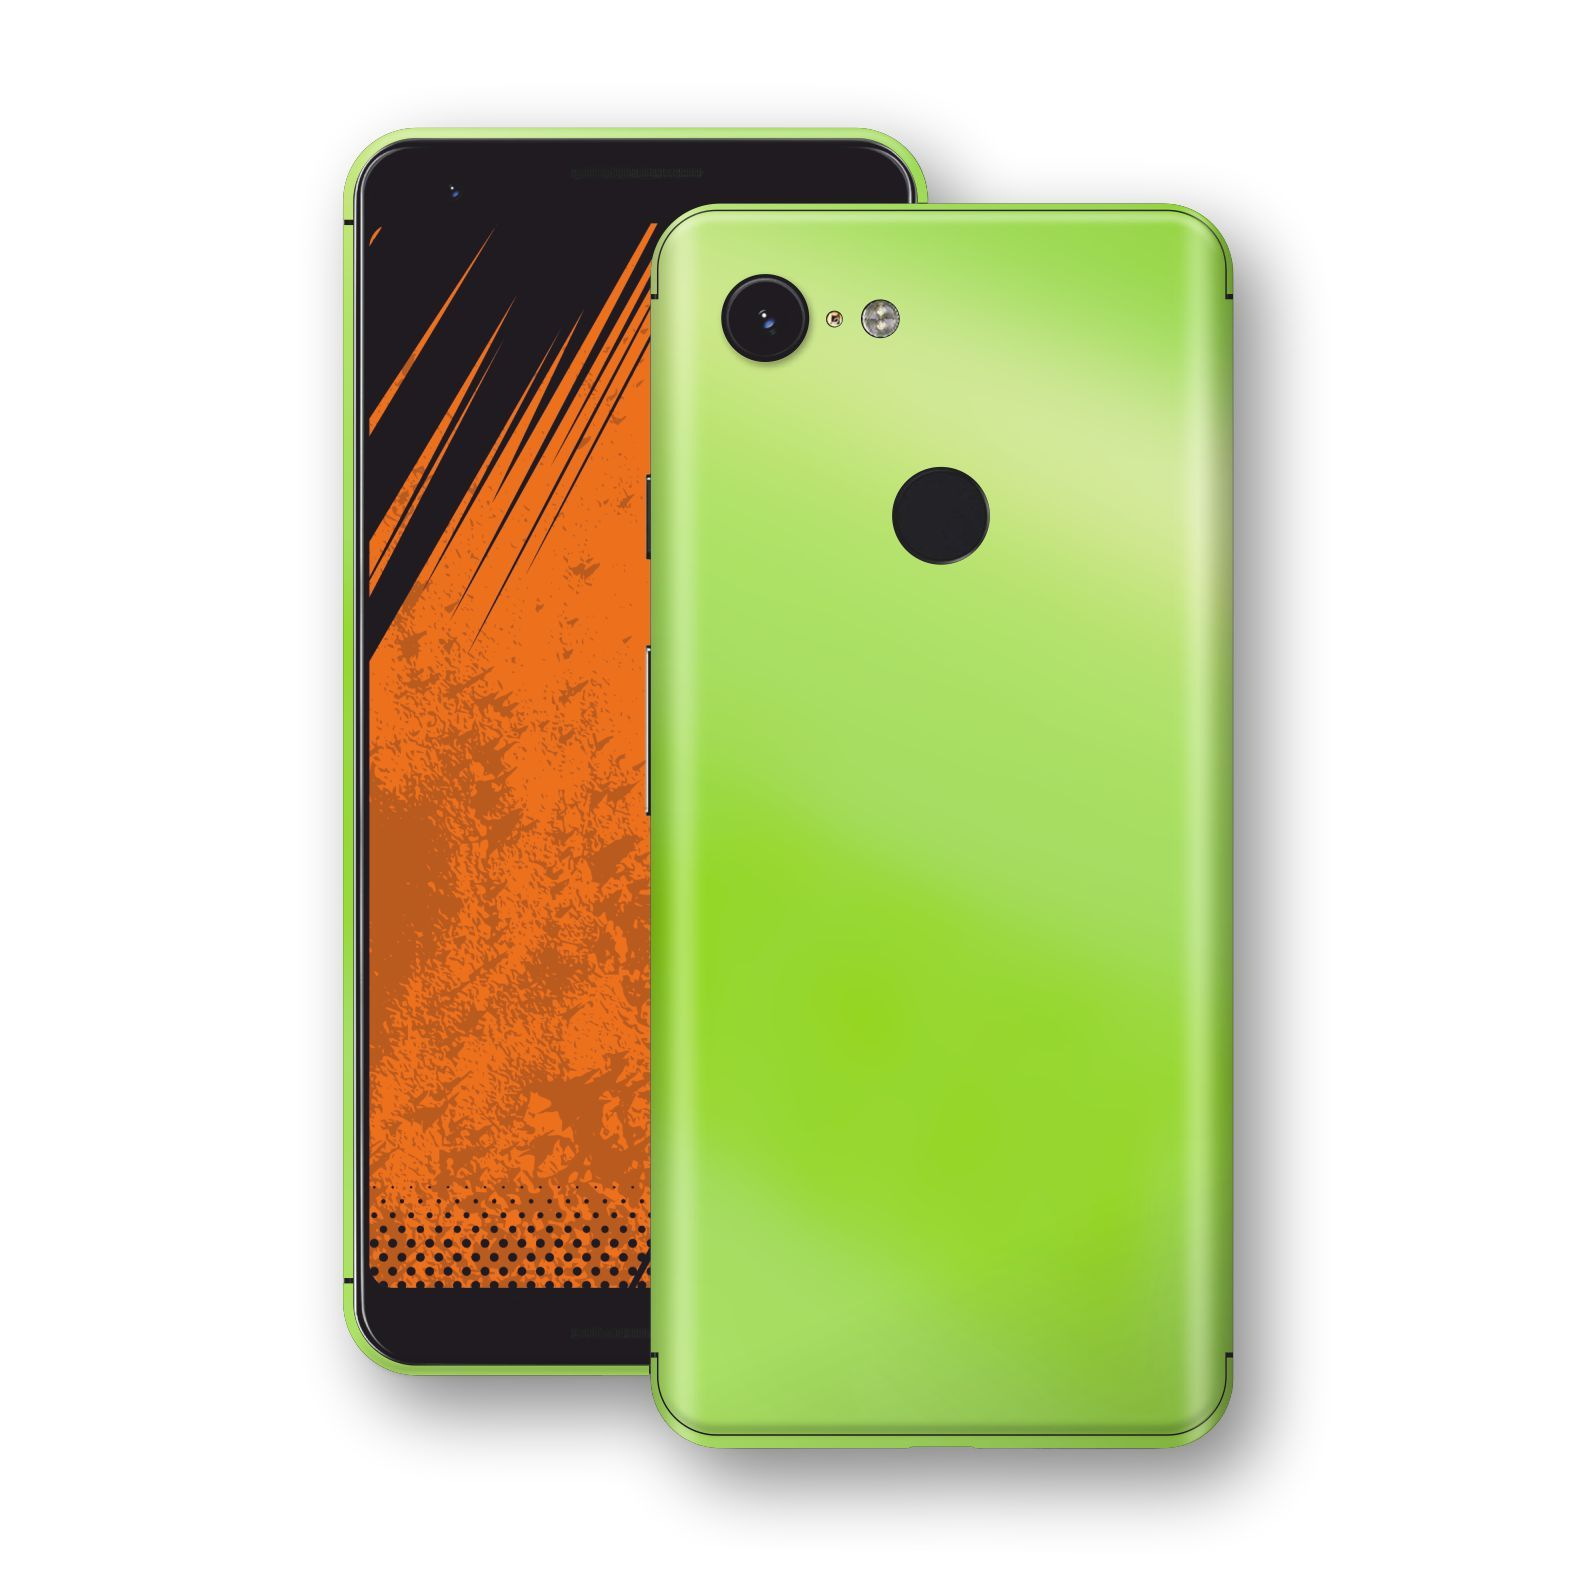 Google Pixel 3a Apple Green Pearl Gloss Finish Skin Wrap Decal Cover by EasySkinz